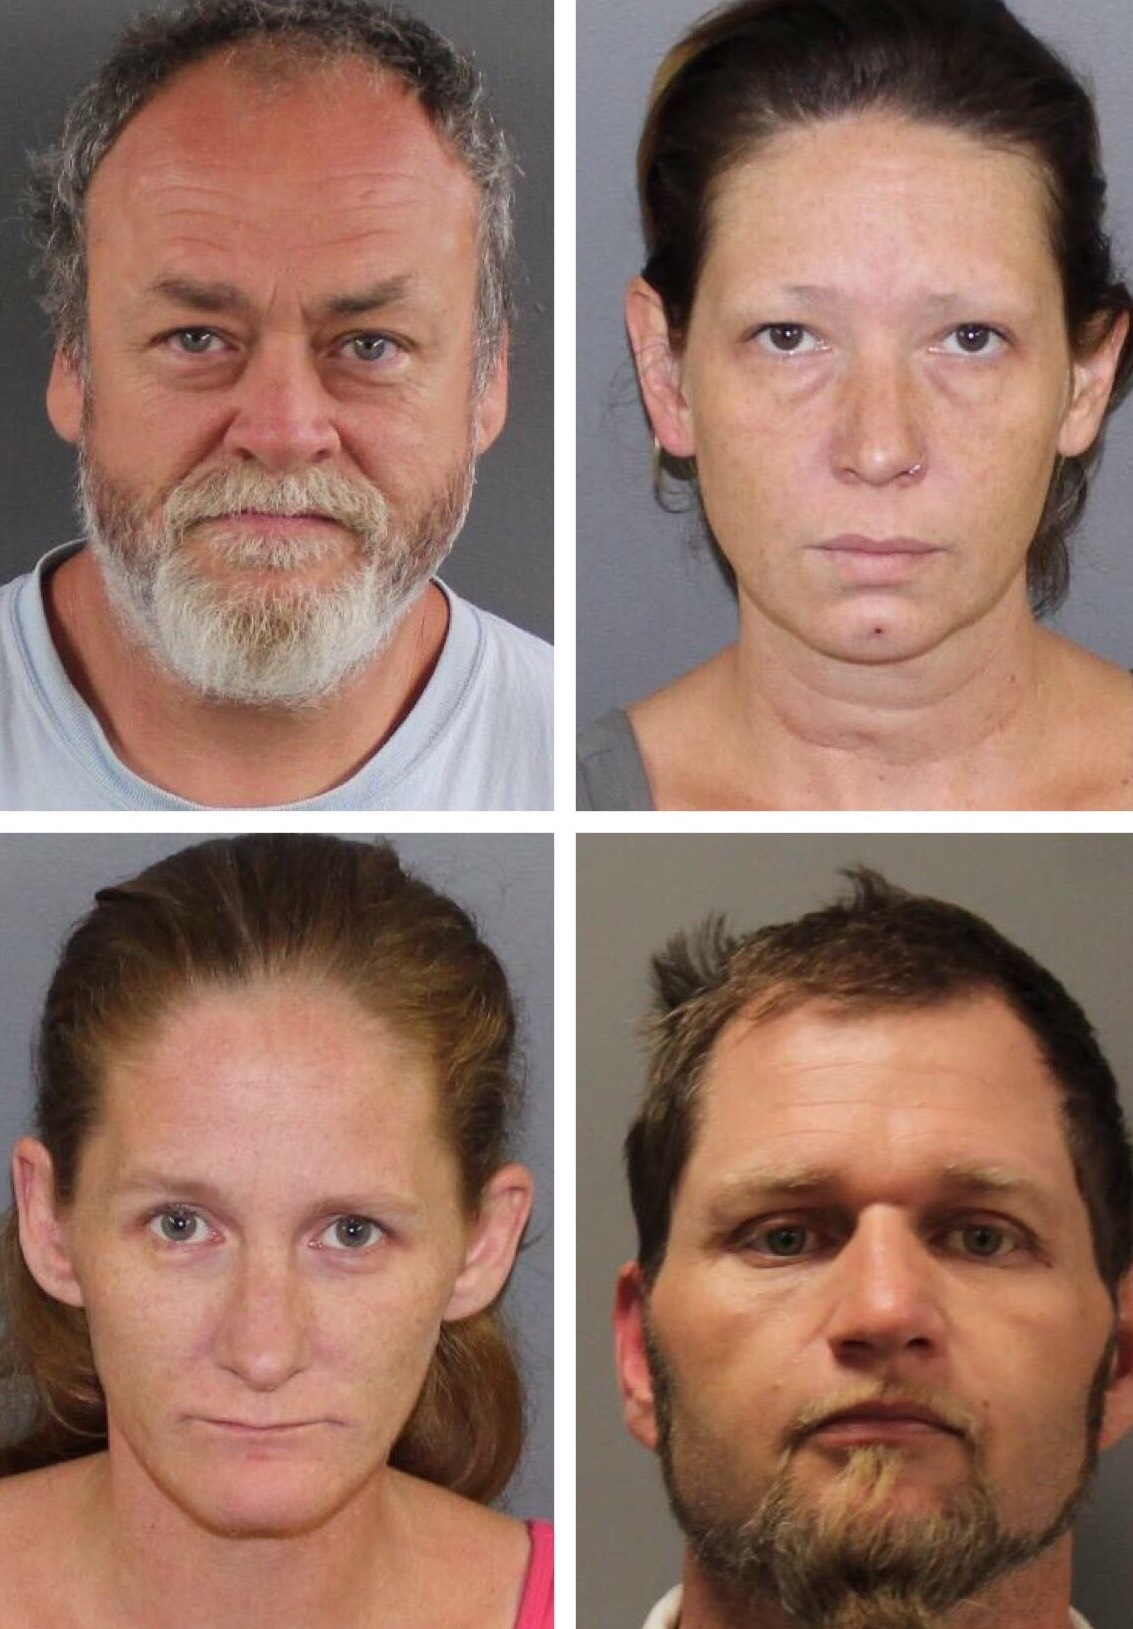 Four Mattoon Residents Arrested for Burglarizing a Vehicle at the Mattoon PD Impound Lot